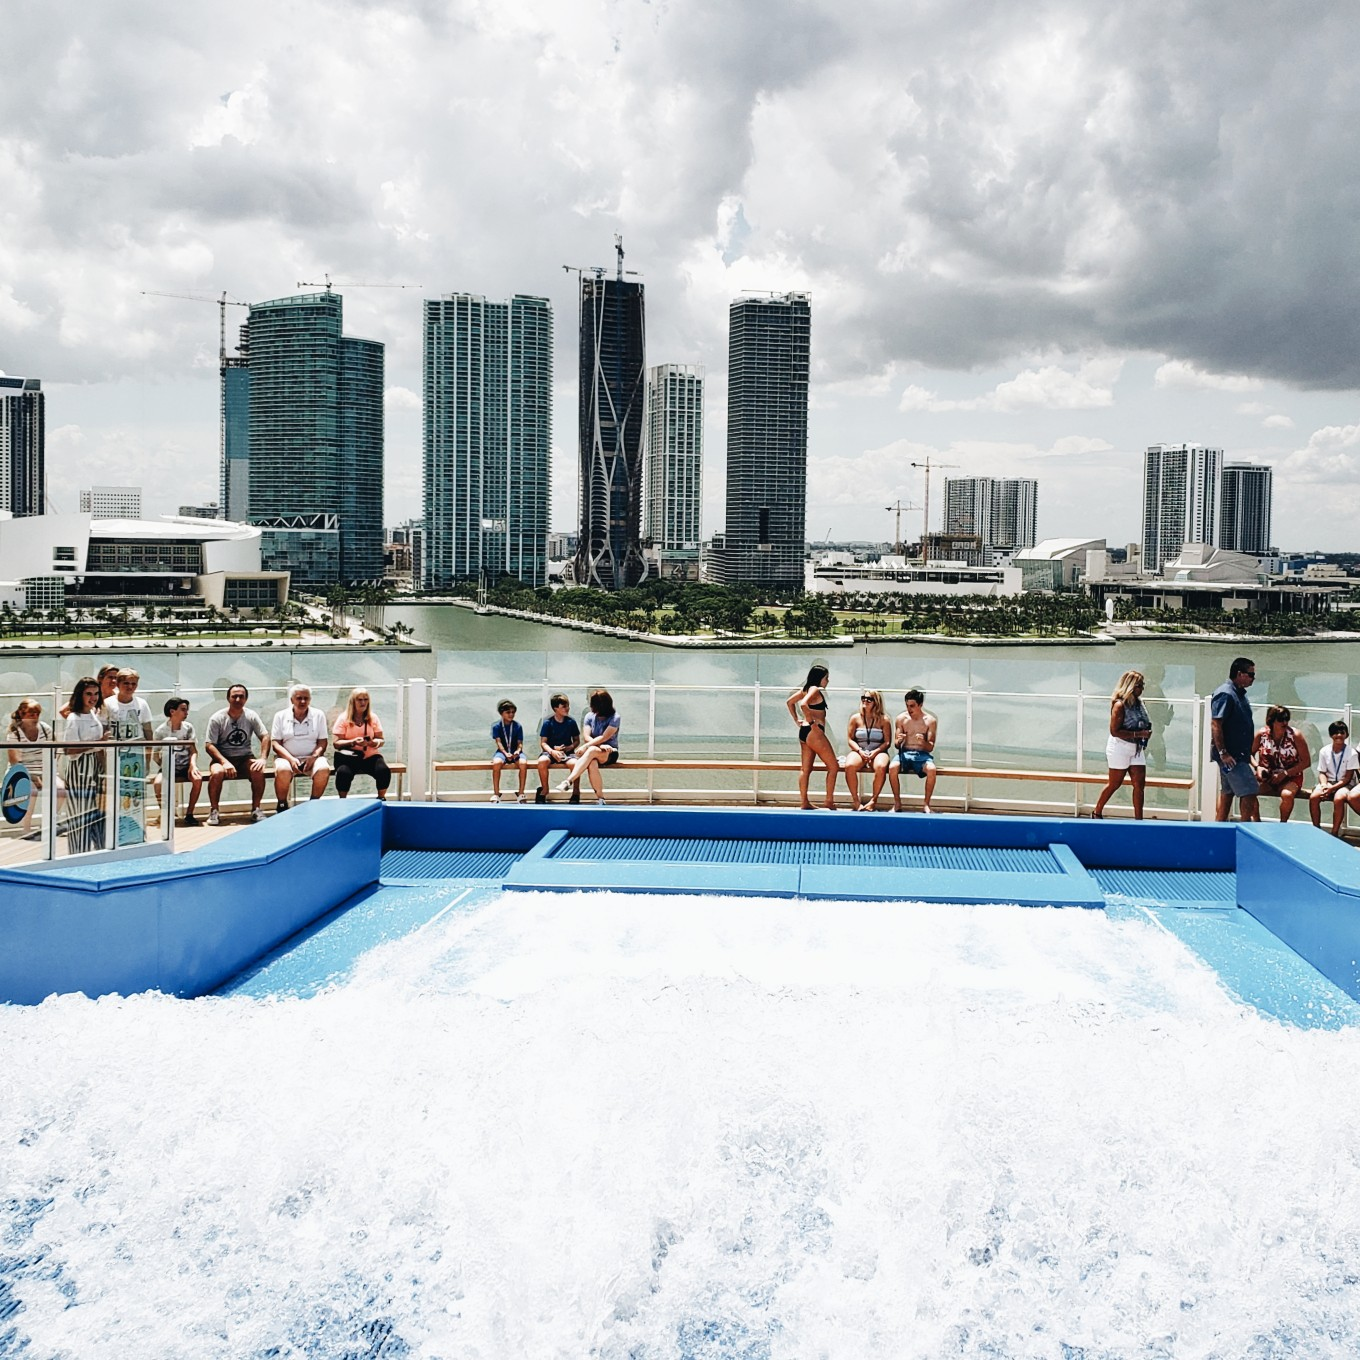 View of Downtown Miami Brickell from Royal Caribbean Ship Mariner of the Seas